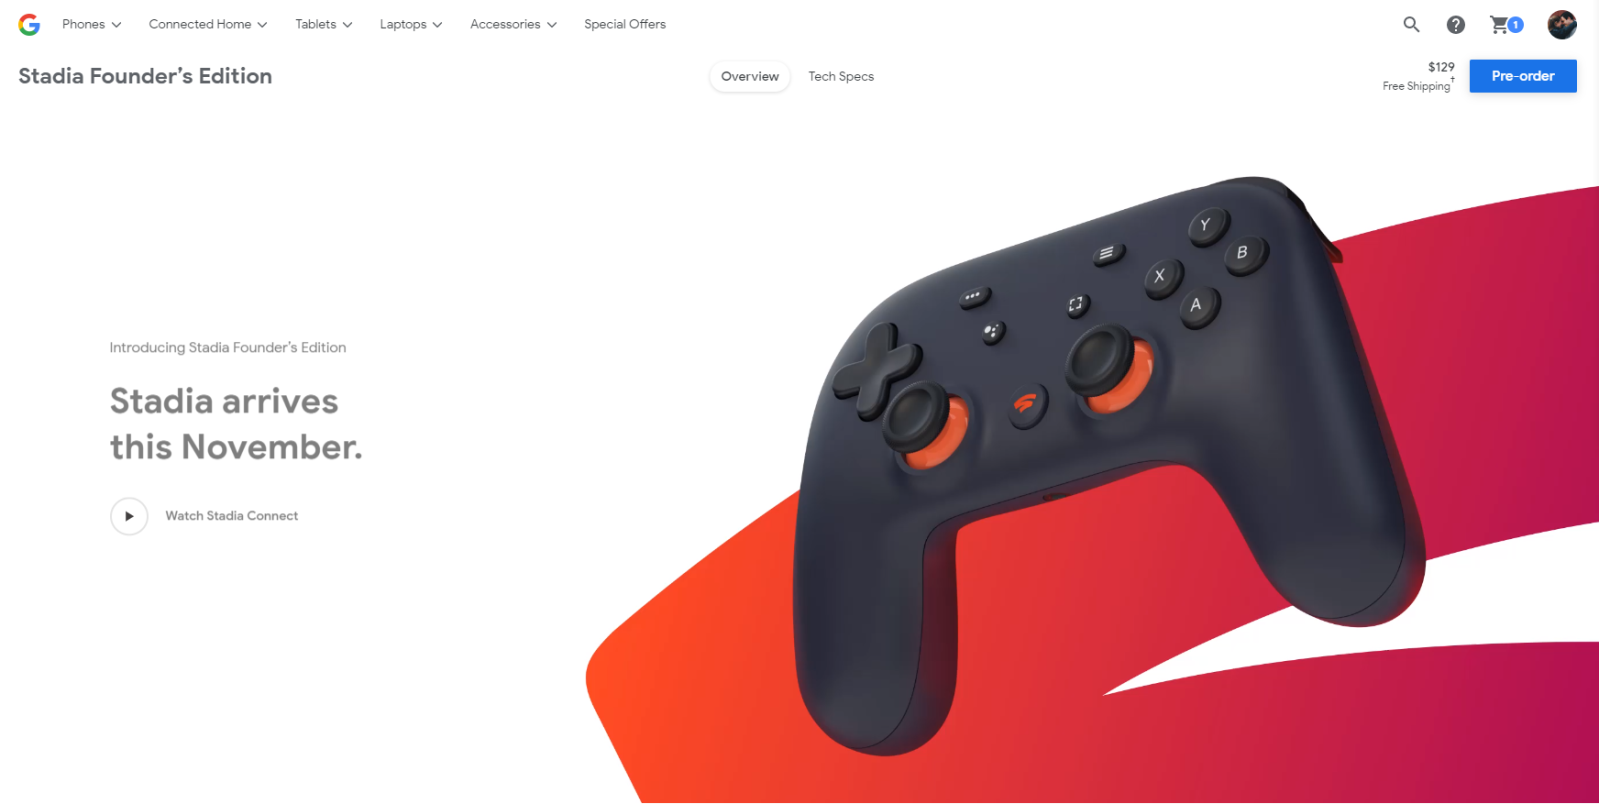 stadia founders edition value